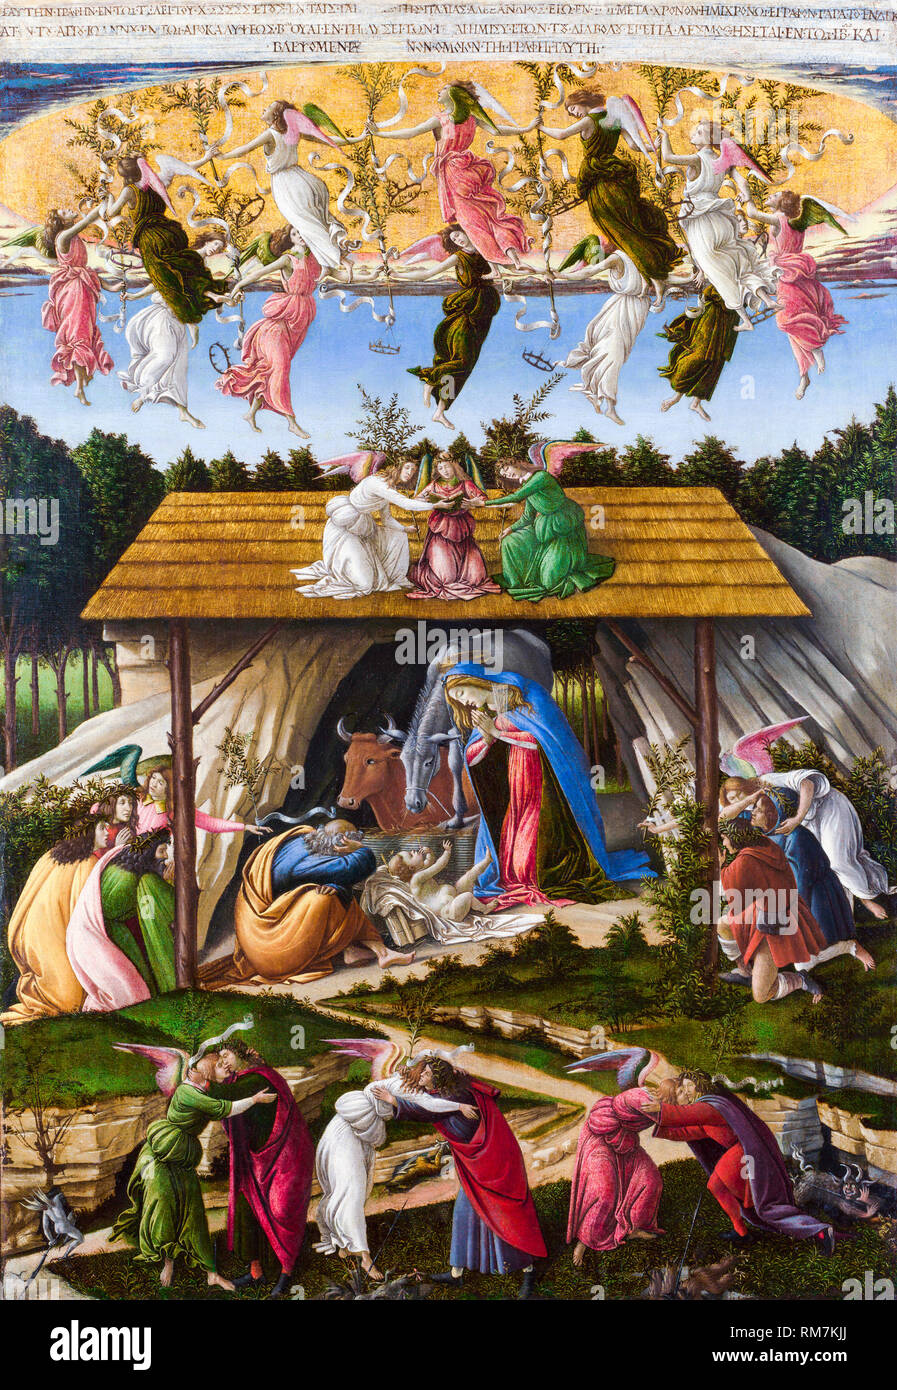 The Mystical Nativity, painting by Sandro Botticelli, c.1500 - Stock Image